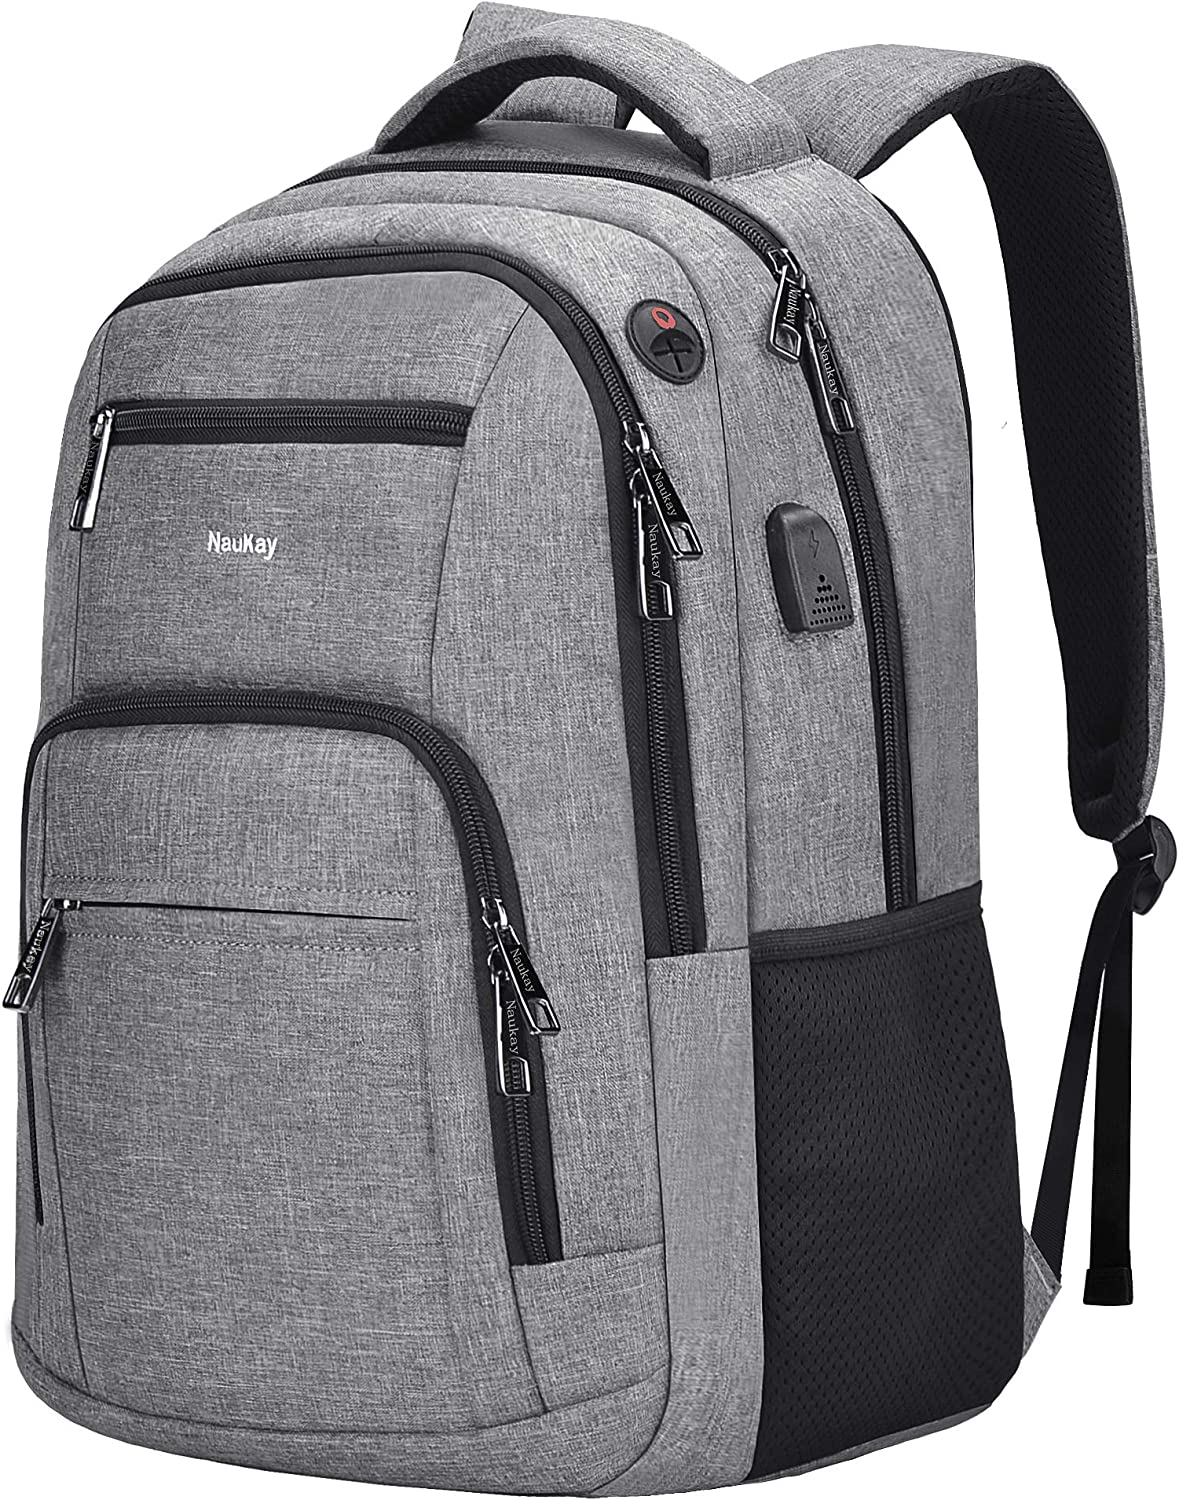 Travel Laptop Backpack,Slim Durable College School Backpack for Men and Women with USB Charging Port,Business Anti-Theft Water Resistant Bookbag Computer Backpack Fits 15.6 Inch Laptop Notebook,Grey